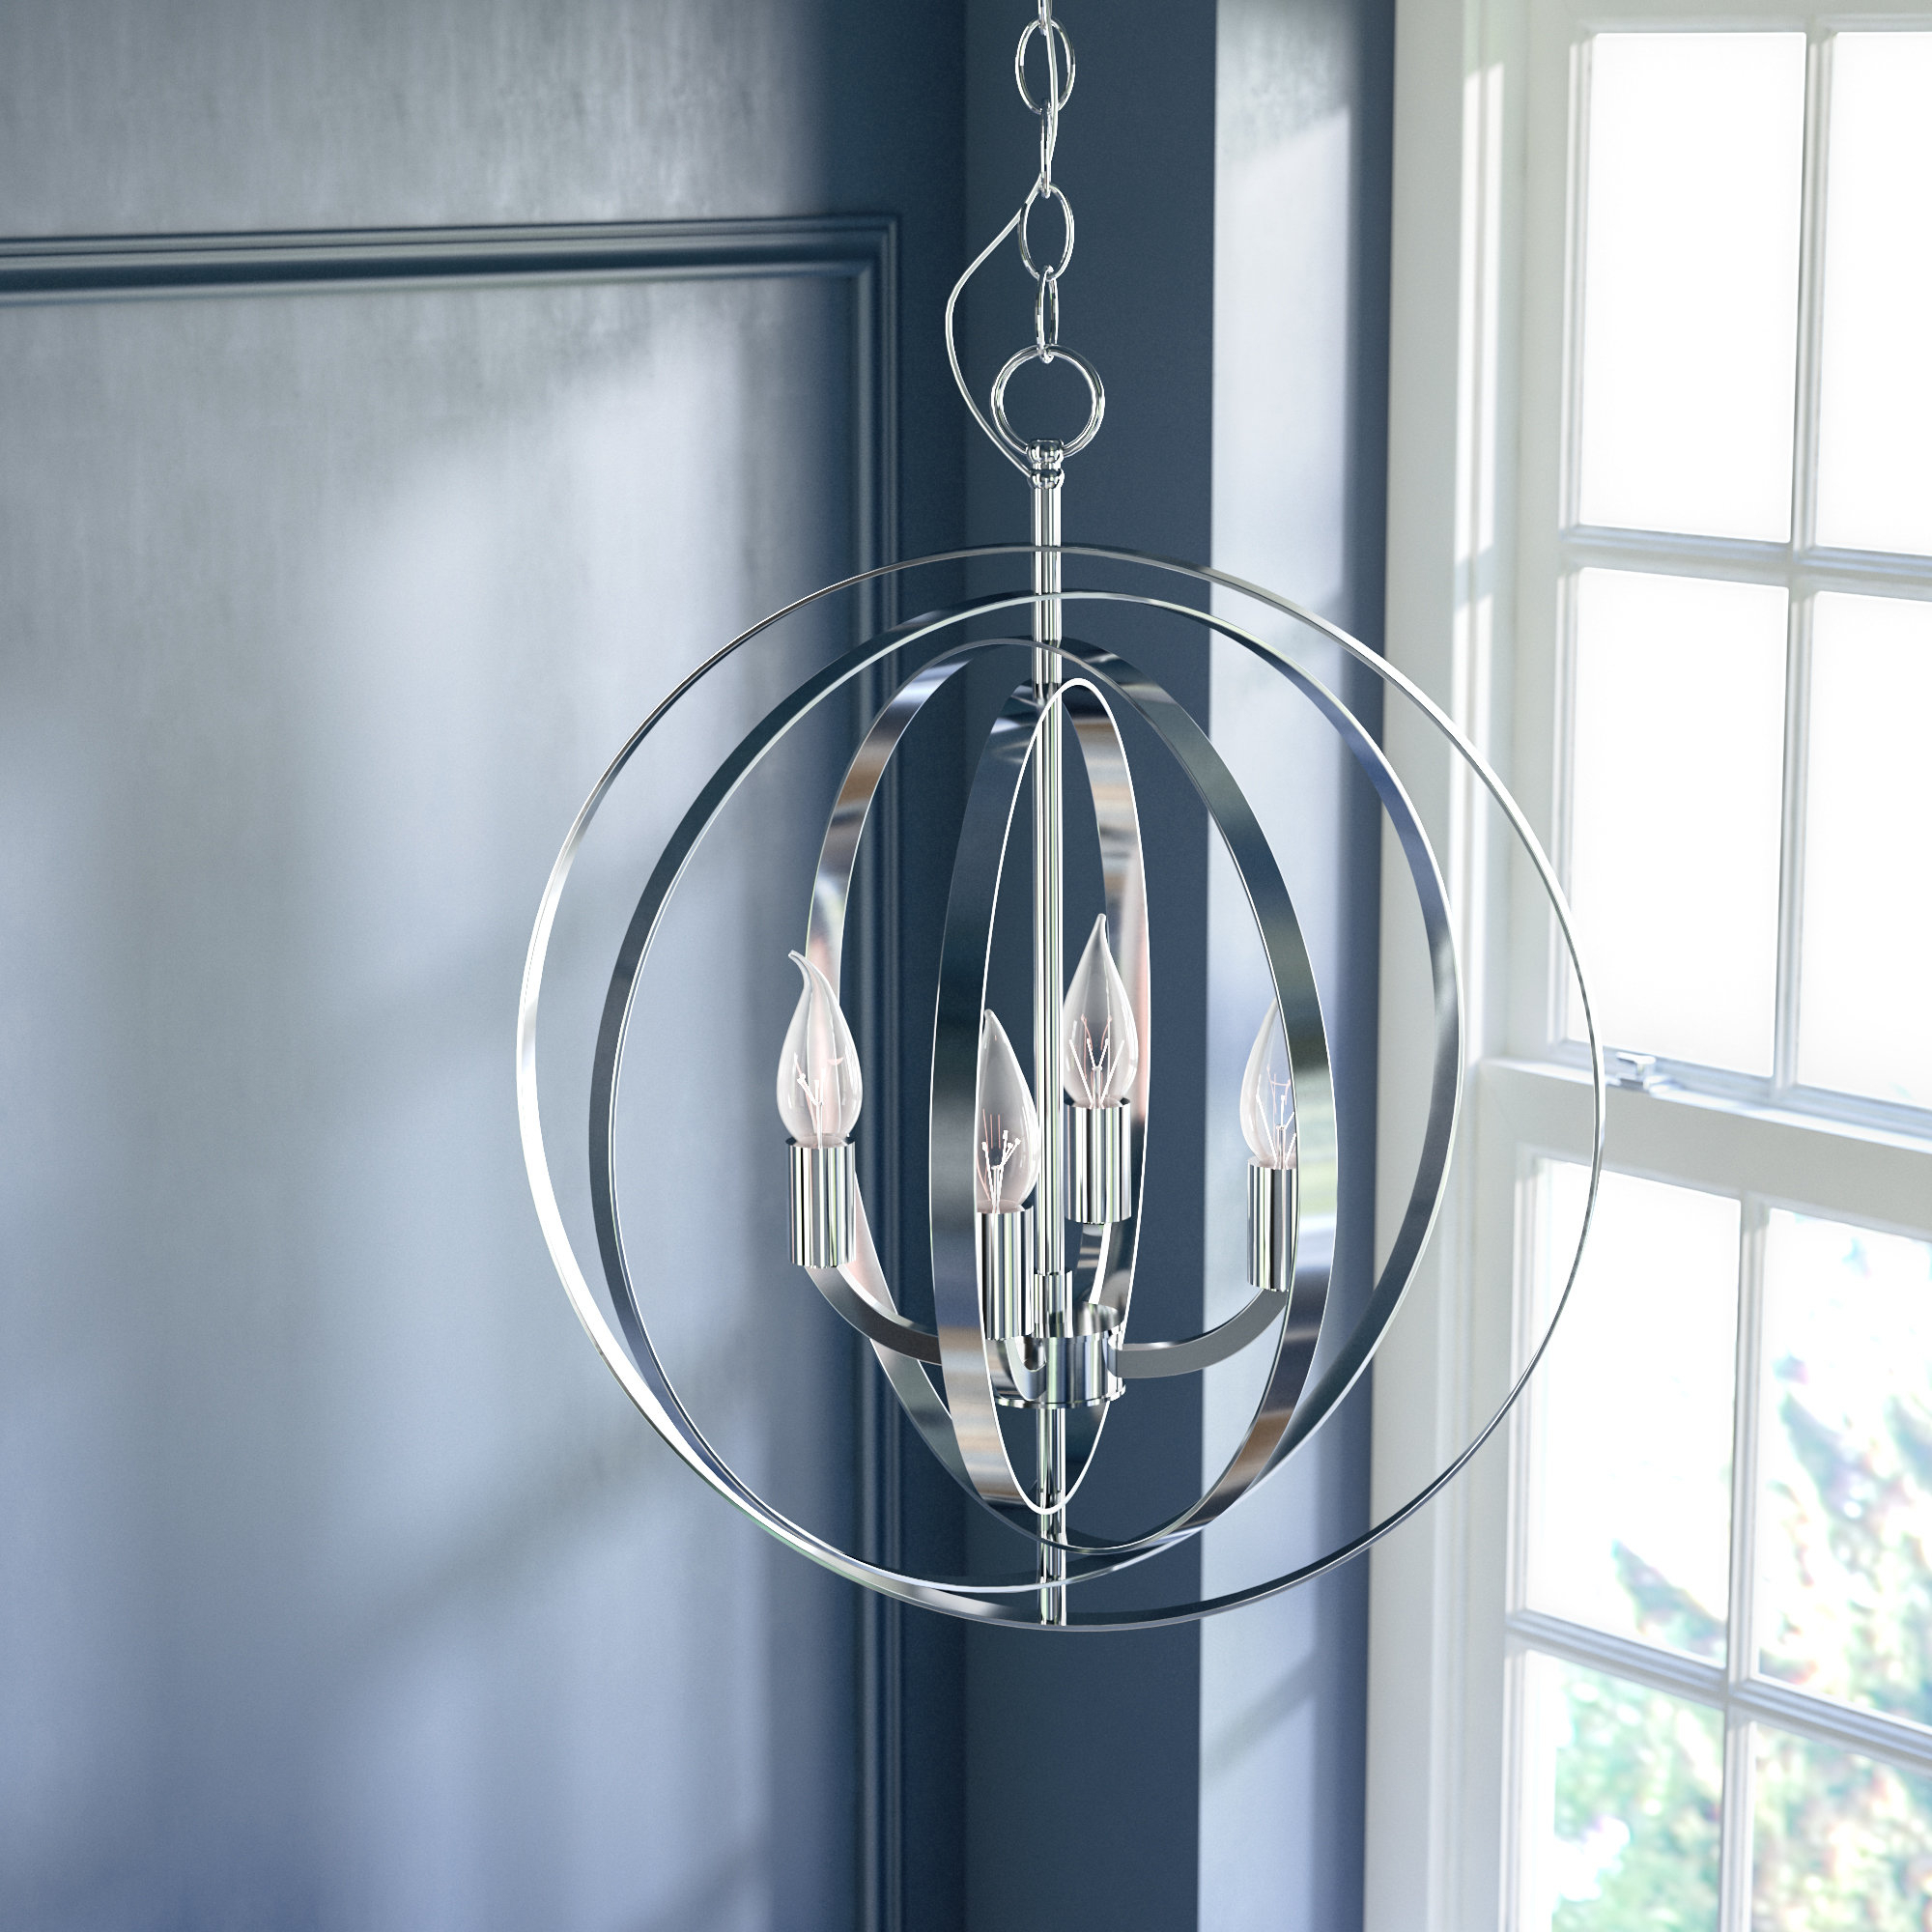 Hendry 4 Light Globe Chandelier Within Most Current Morganti 4 Light Chandeliers (View 8 of 20)